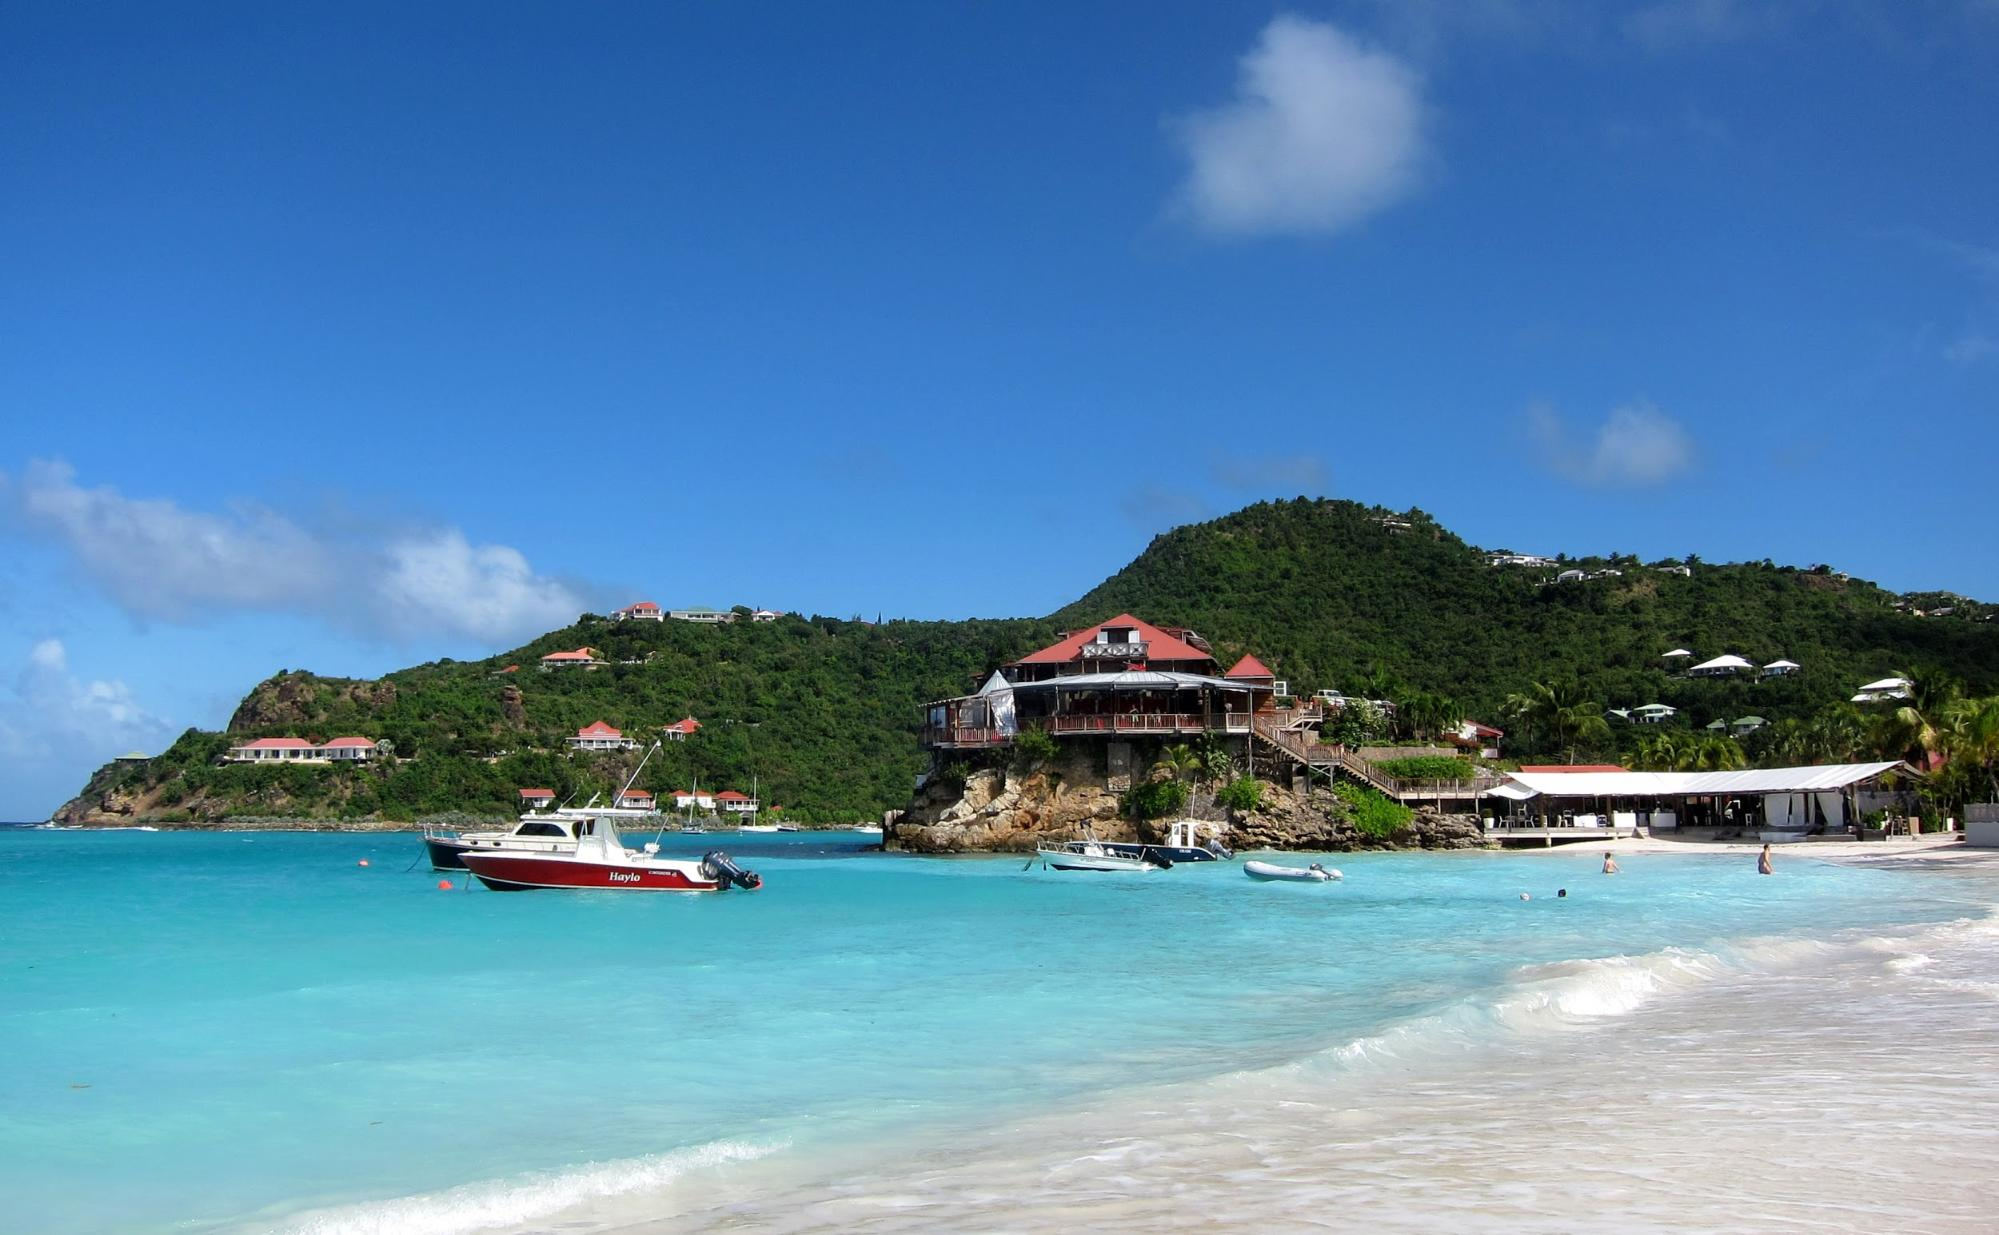 Don't miss Anse de Combier when sailing in St Martin